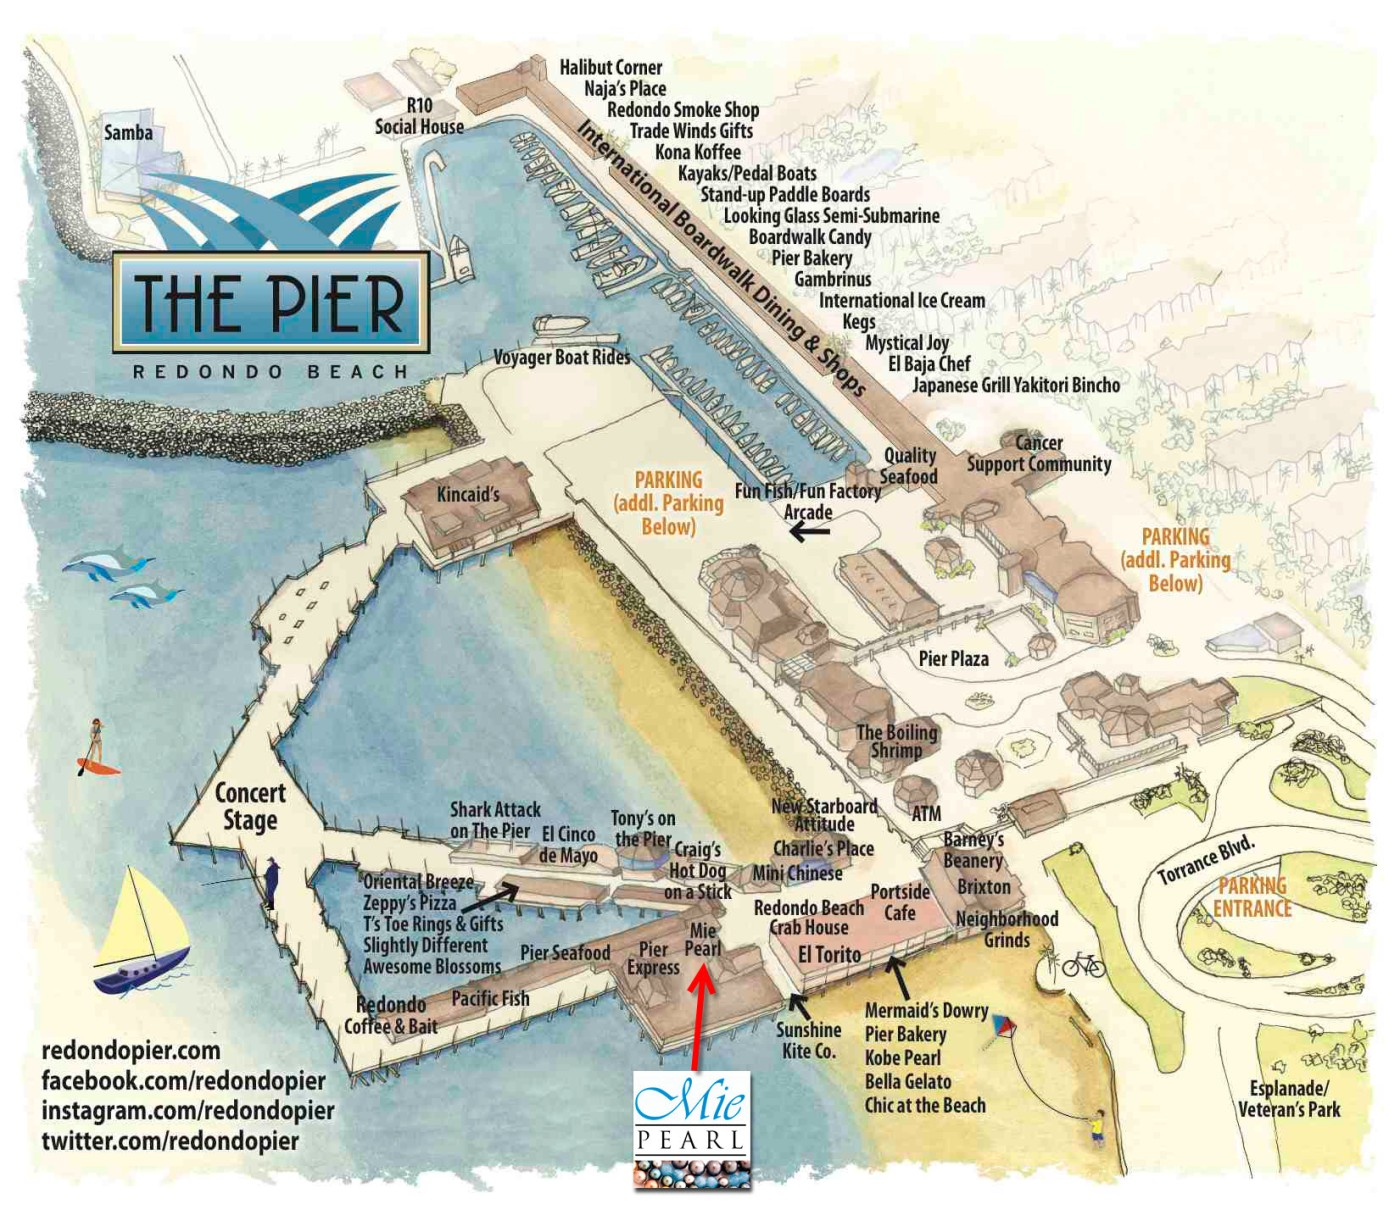 redondo beach pier map pearl necklaces and jewelry at the